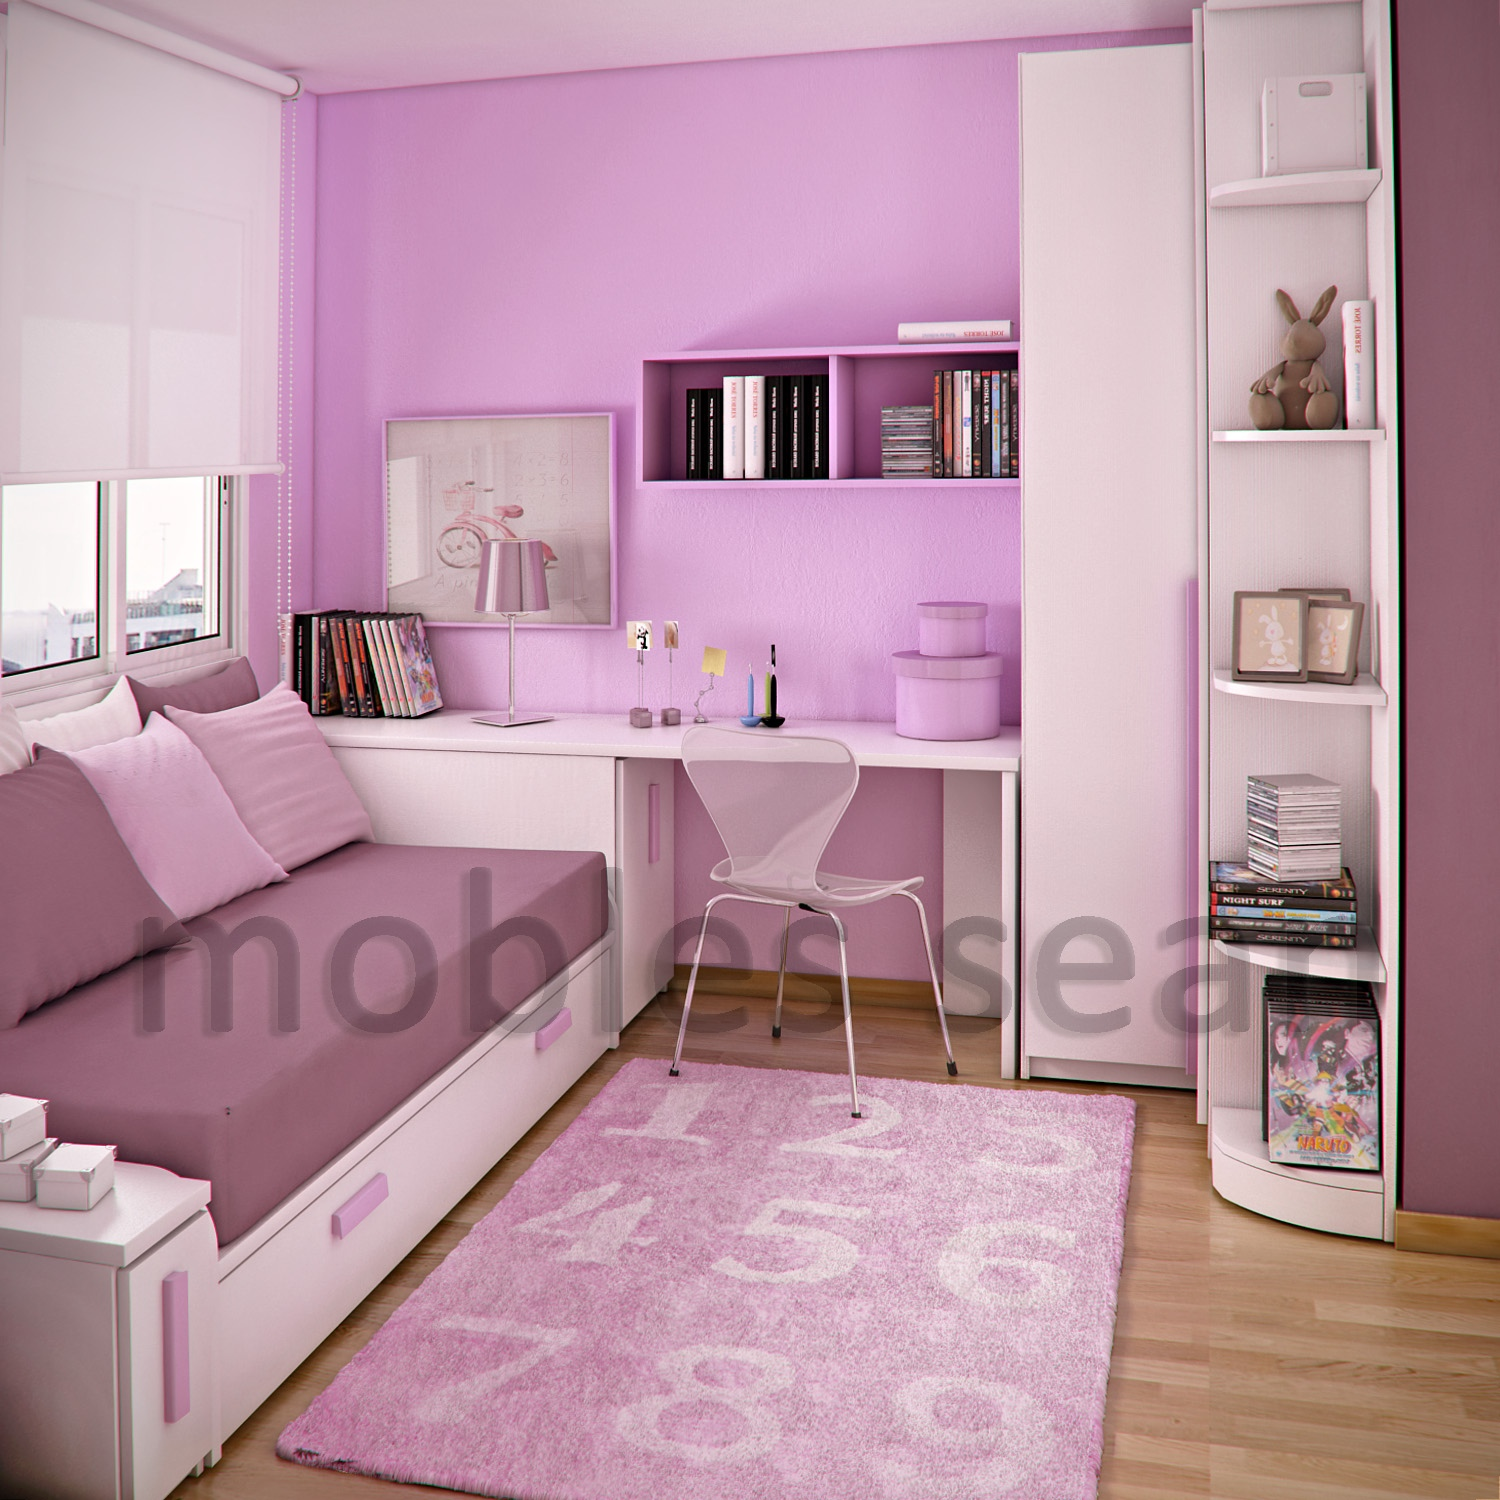 Bedroom Designs Small space-saving designs for small kids rooms